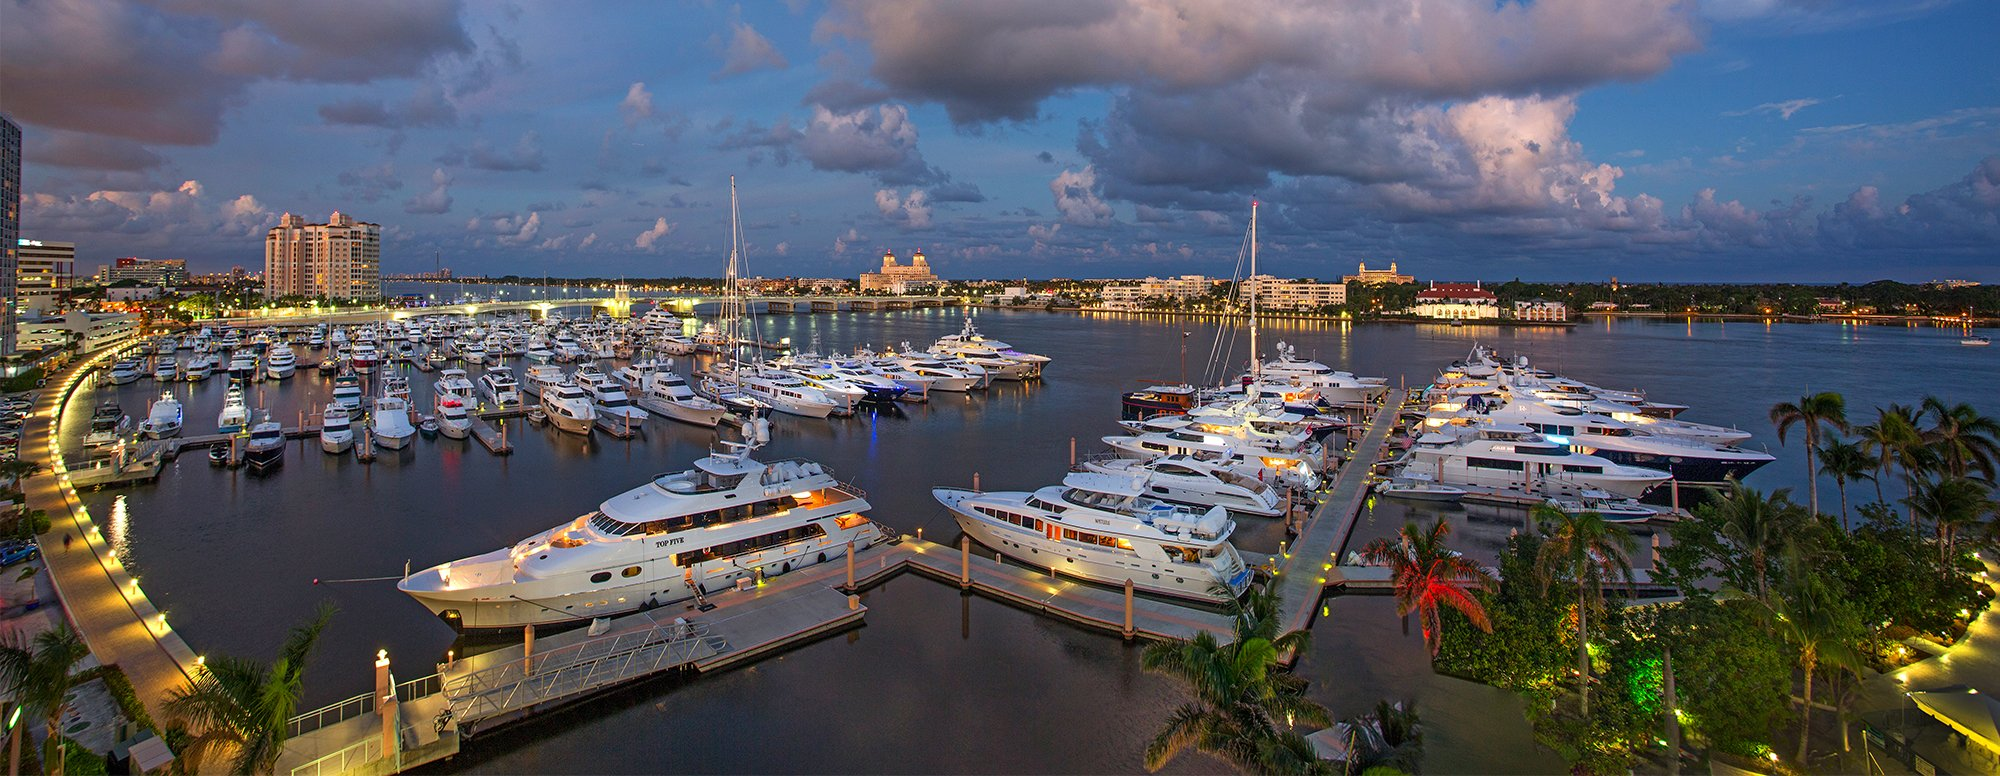 Palm Harbor Docks at sunset